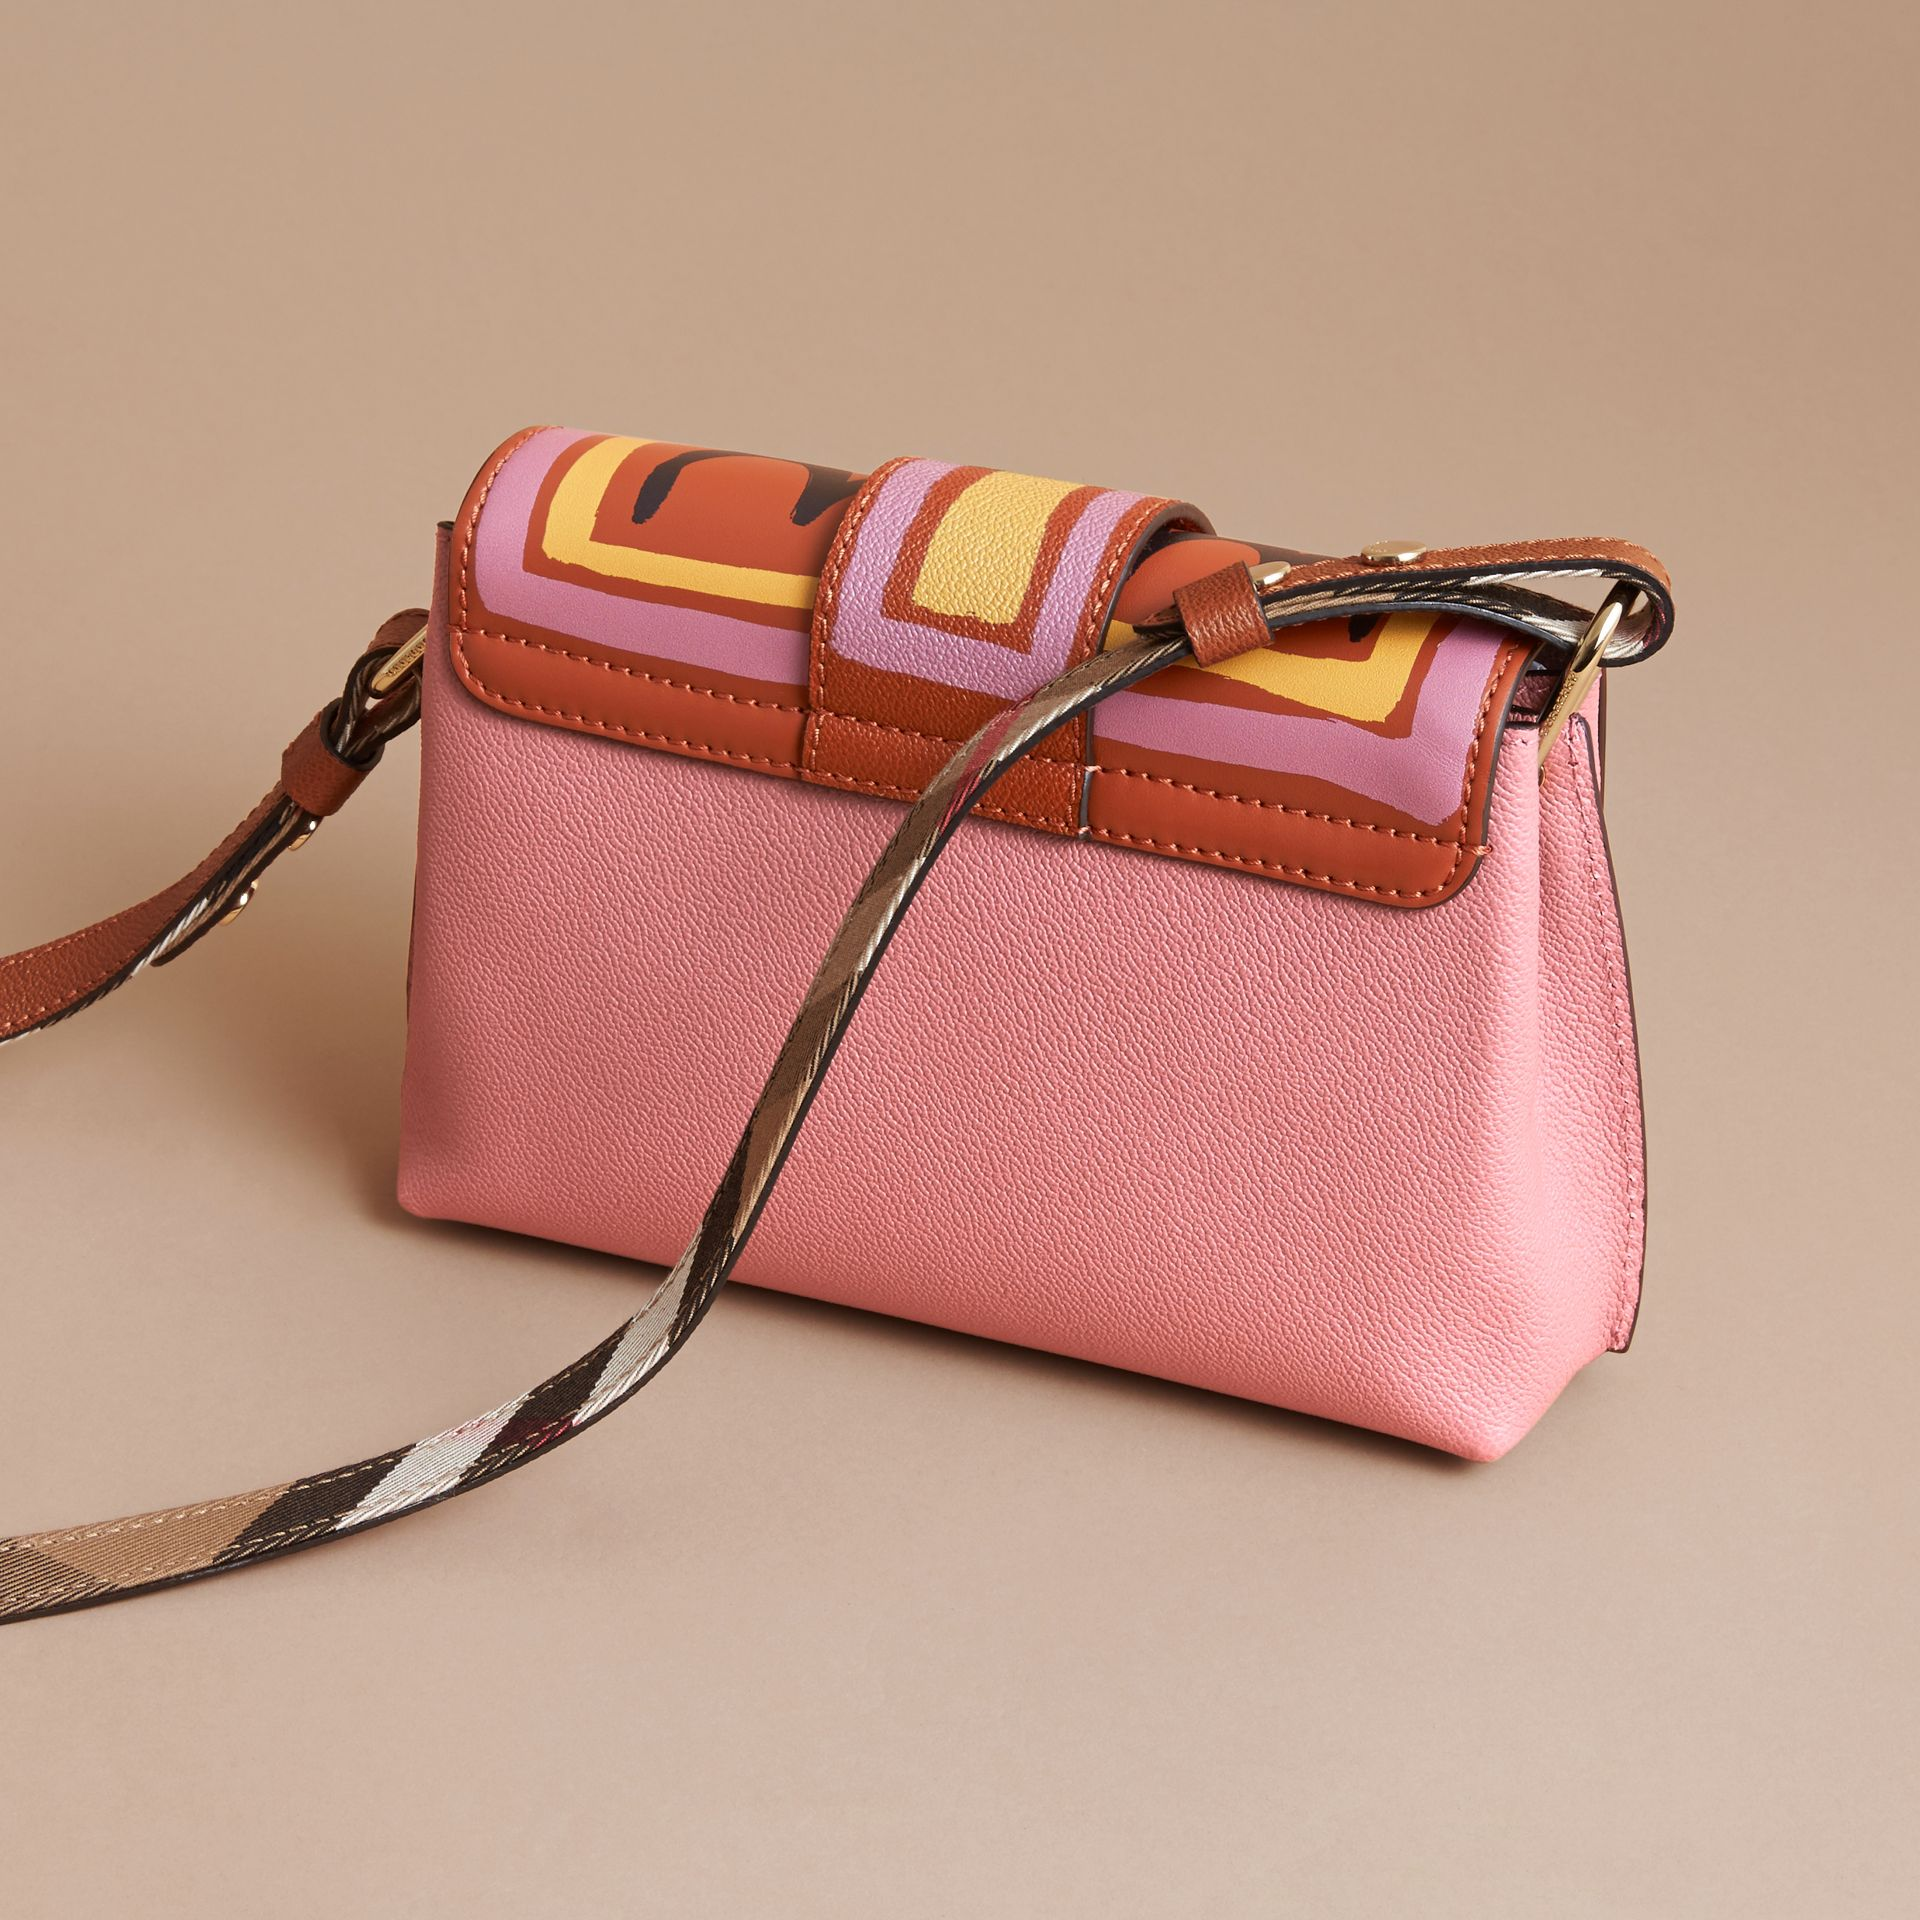 The Buckle Crossbody Bag in Trompe L'oeil Leather in Dusty Pink/bright Toffee - gallery image 4